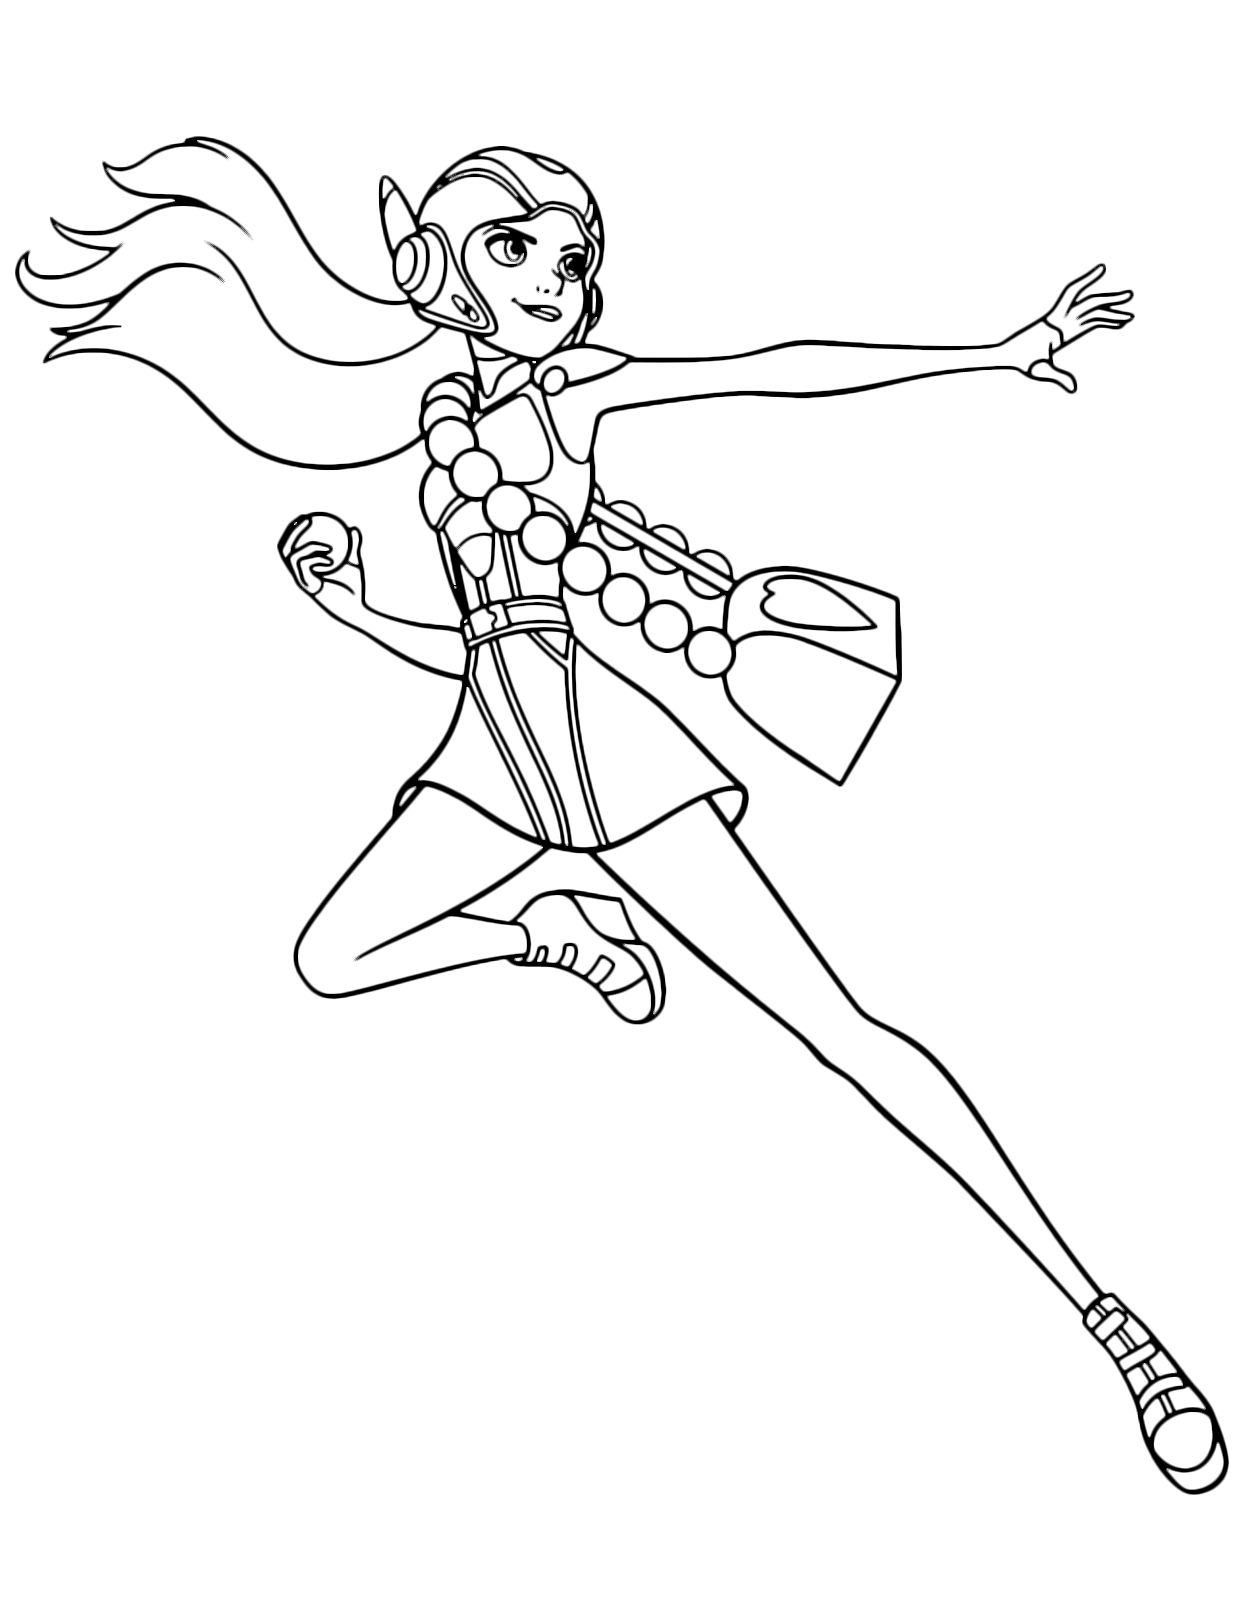 Hero Coloring Pages - Big Hero 6 La Maga Della Scienza Honey Lemon